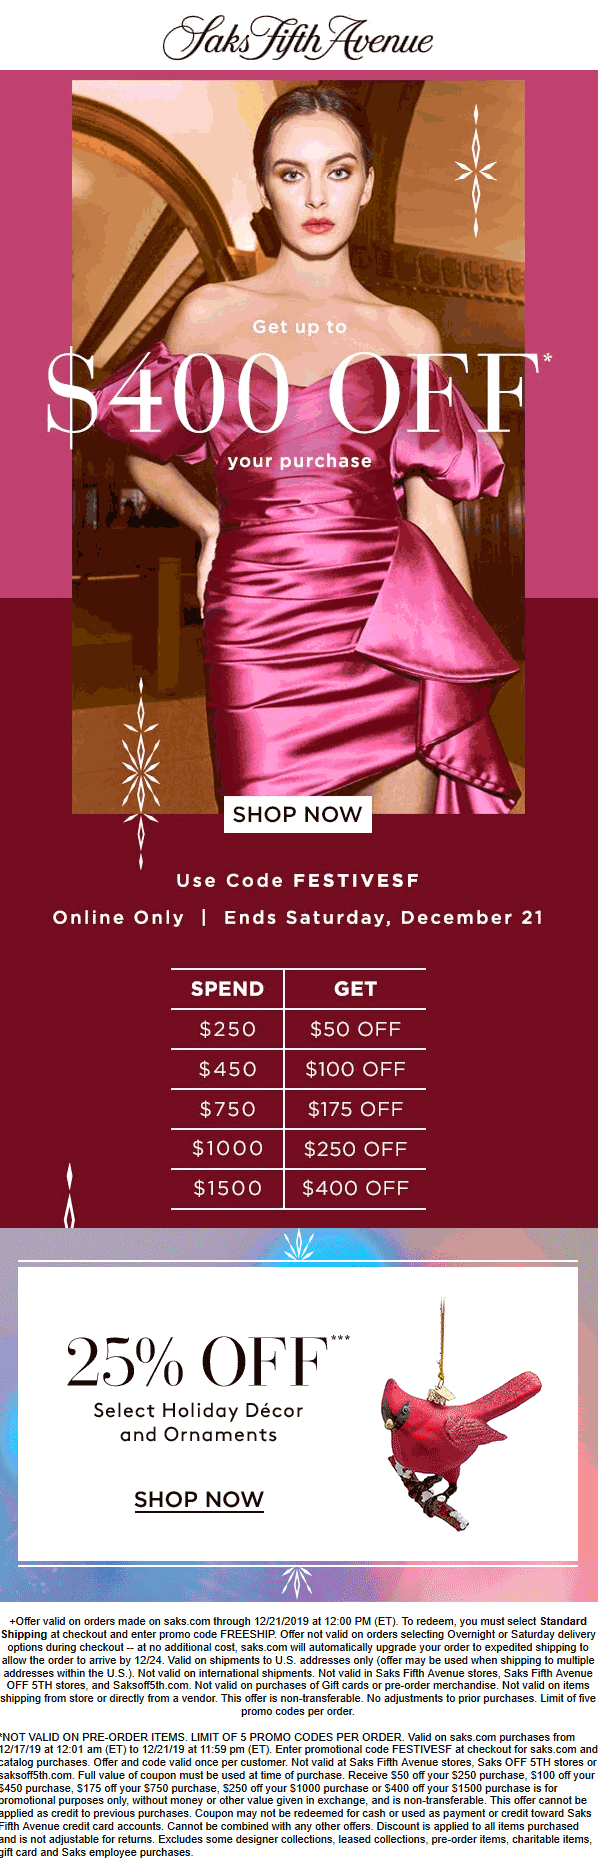 Saks Fifth Avenue coupons & promo code for [January 2021]